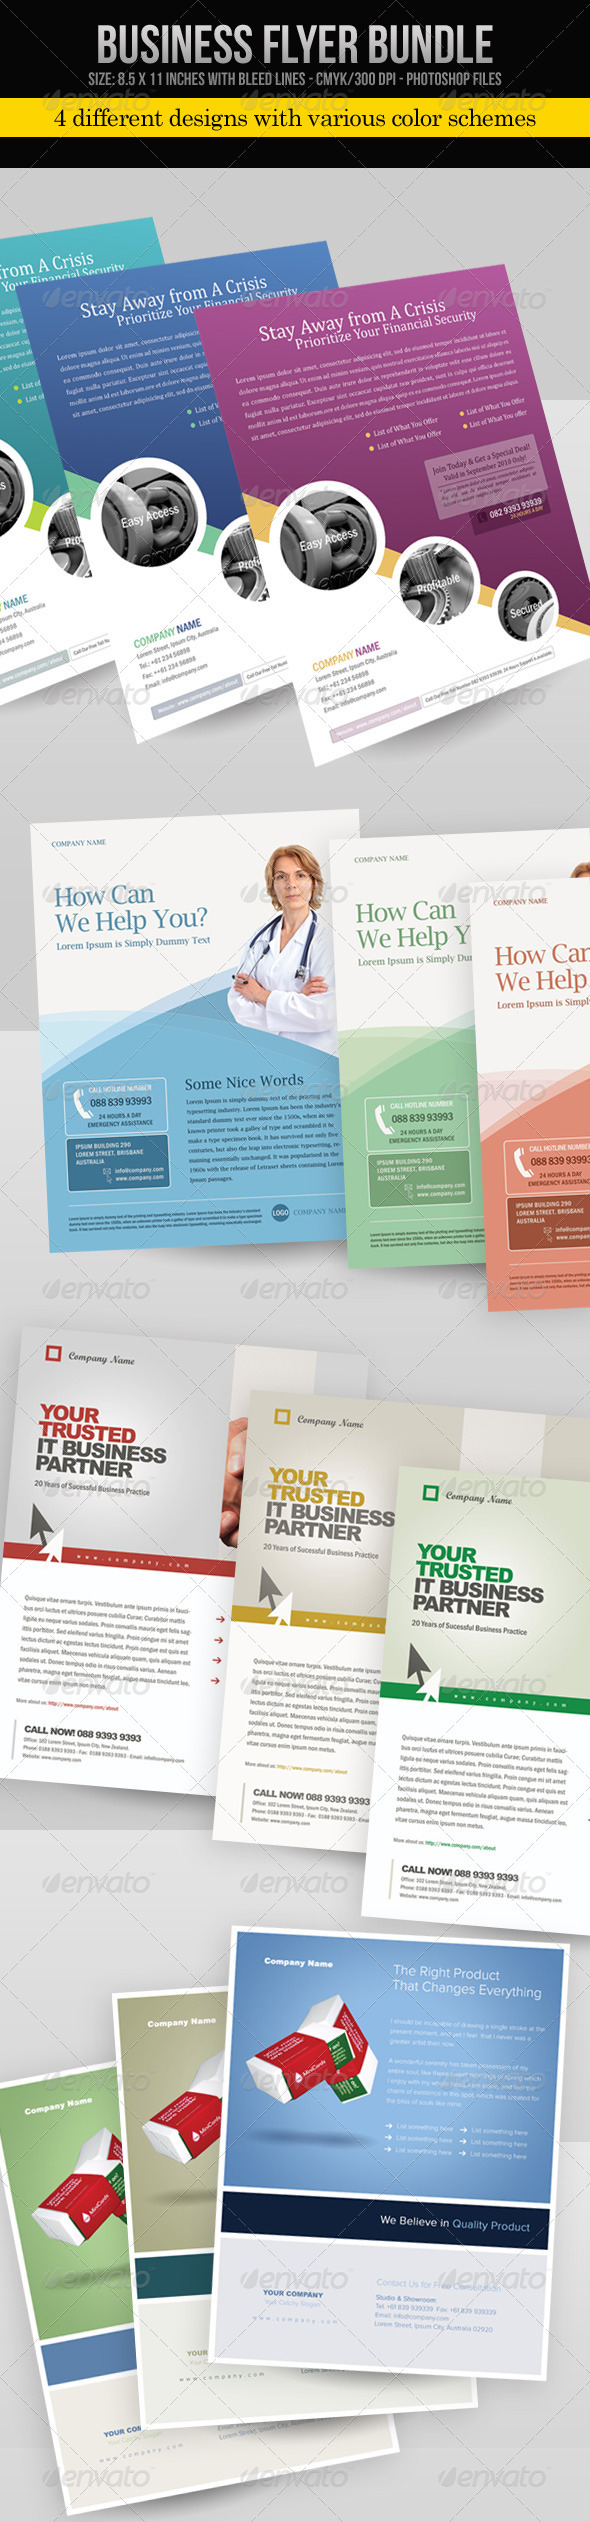 Business Flyer Bundle - Corporate Flyers